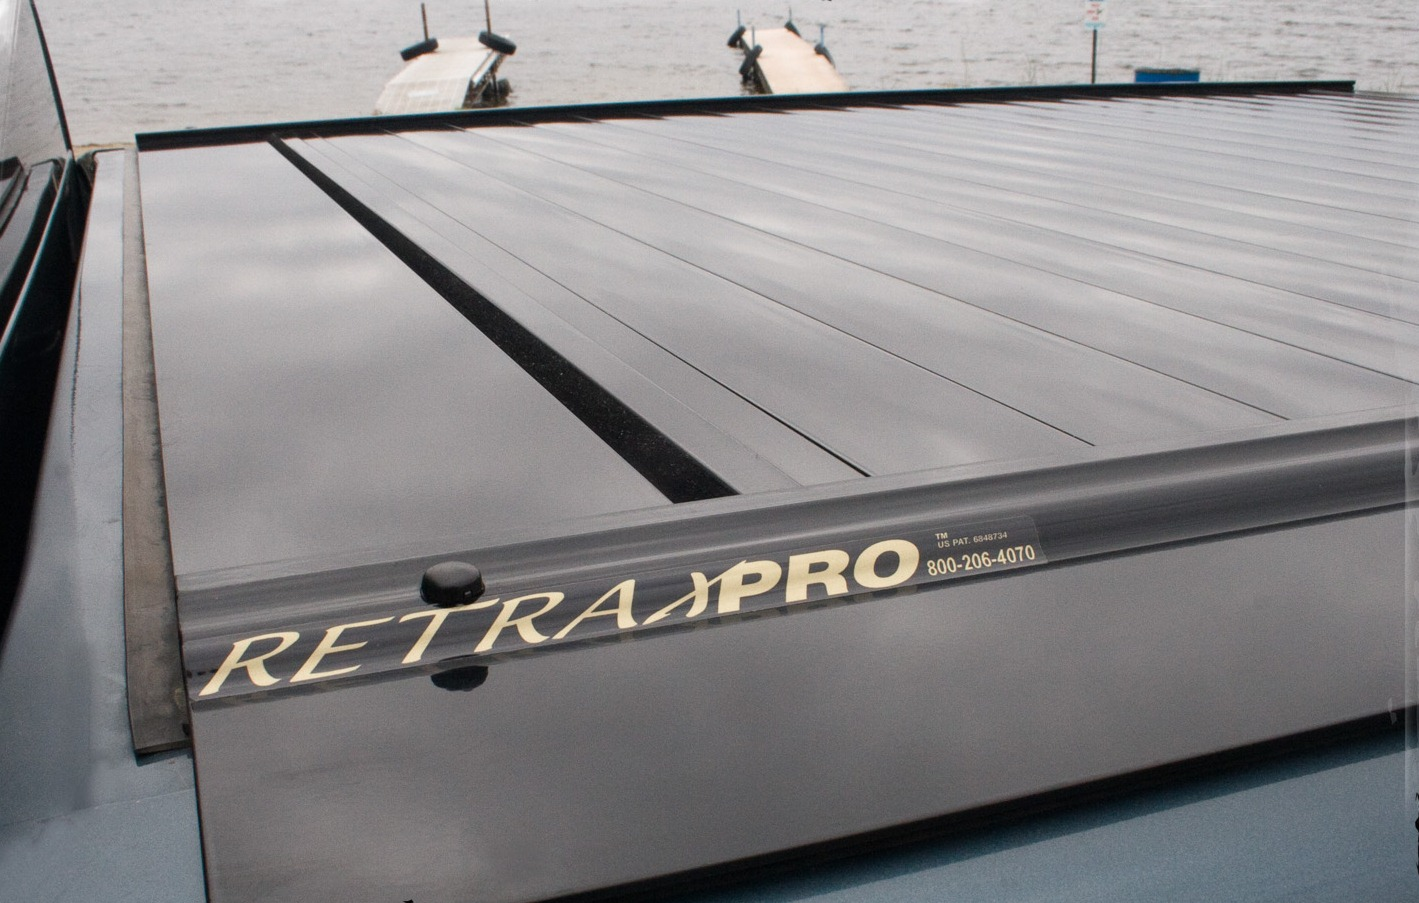 Rolling Truck Bed Covers >> Retrax Pro Retractable Truck Bed Cover - Free Shipping